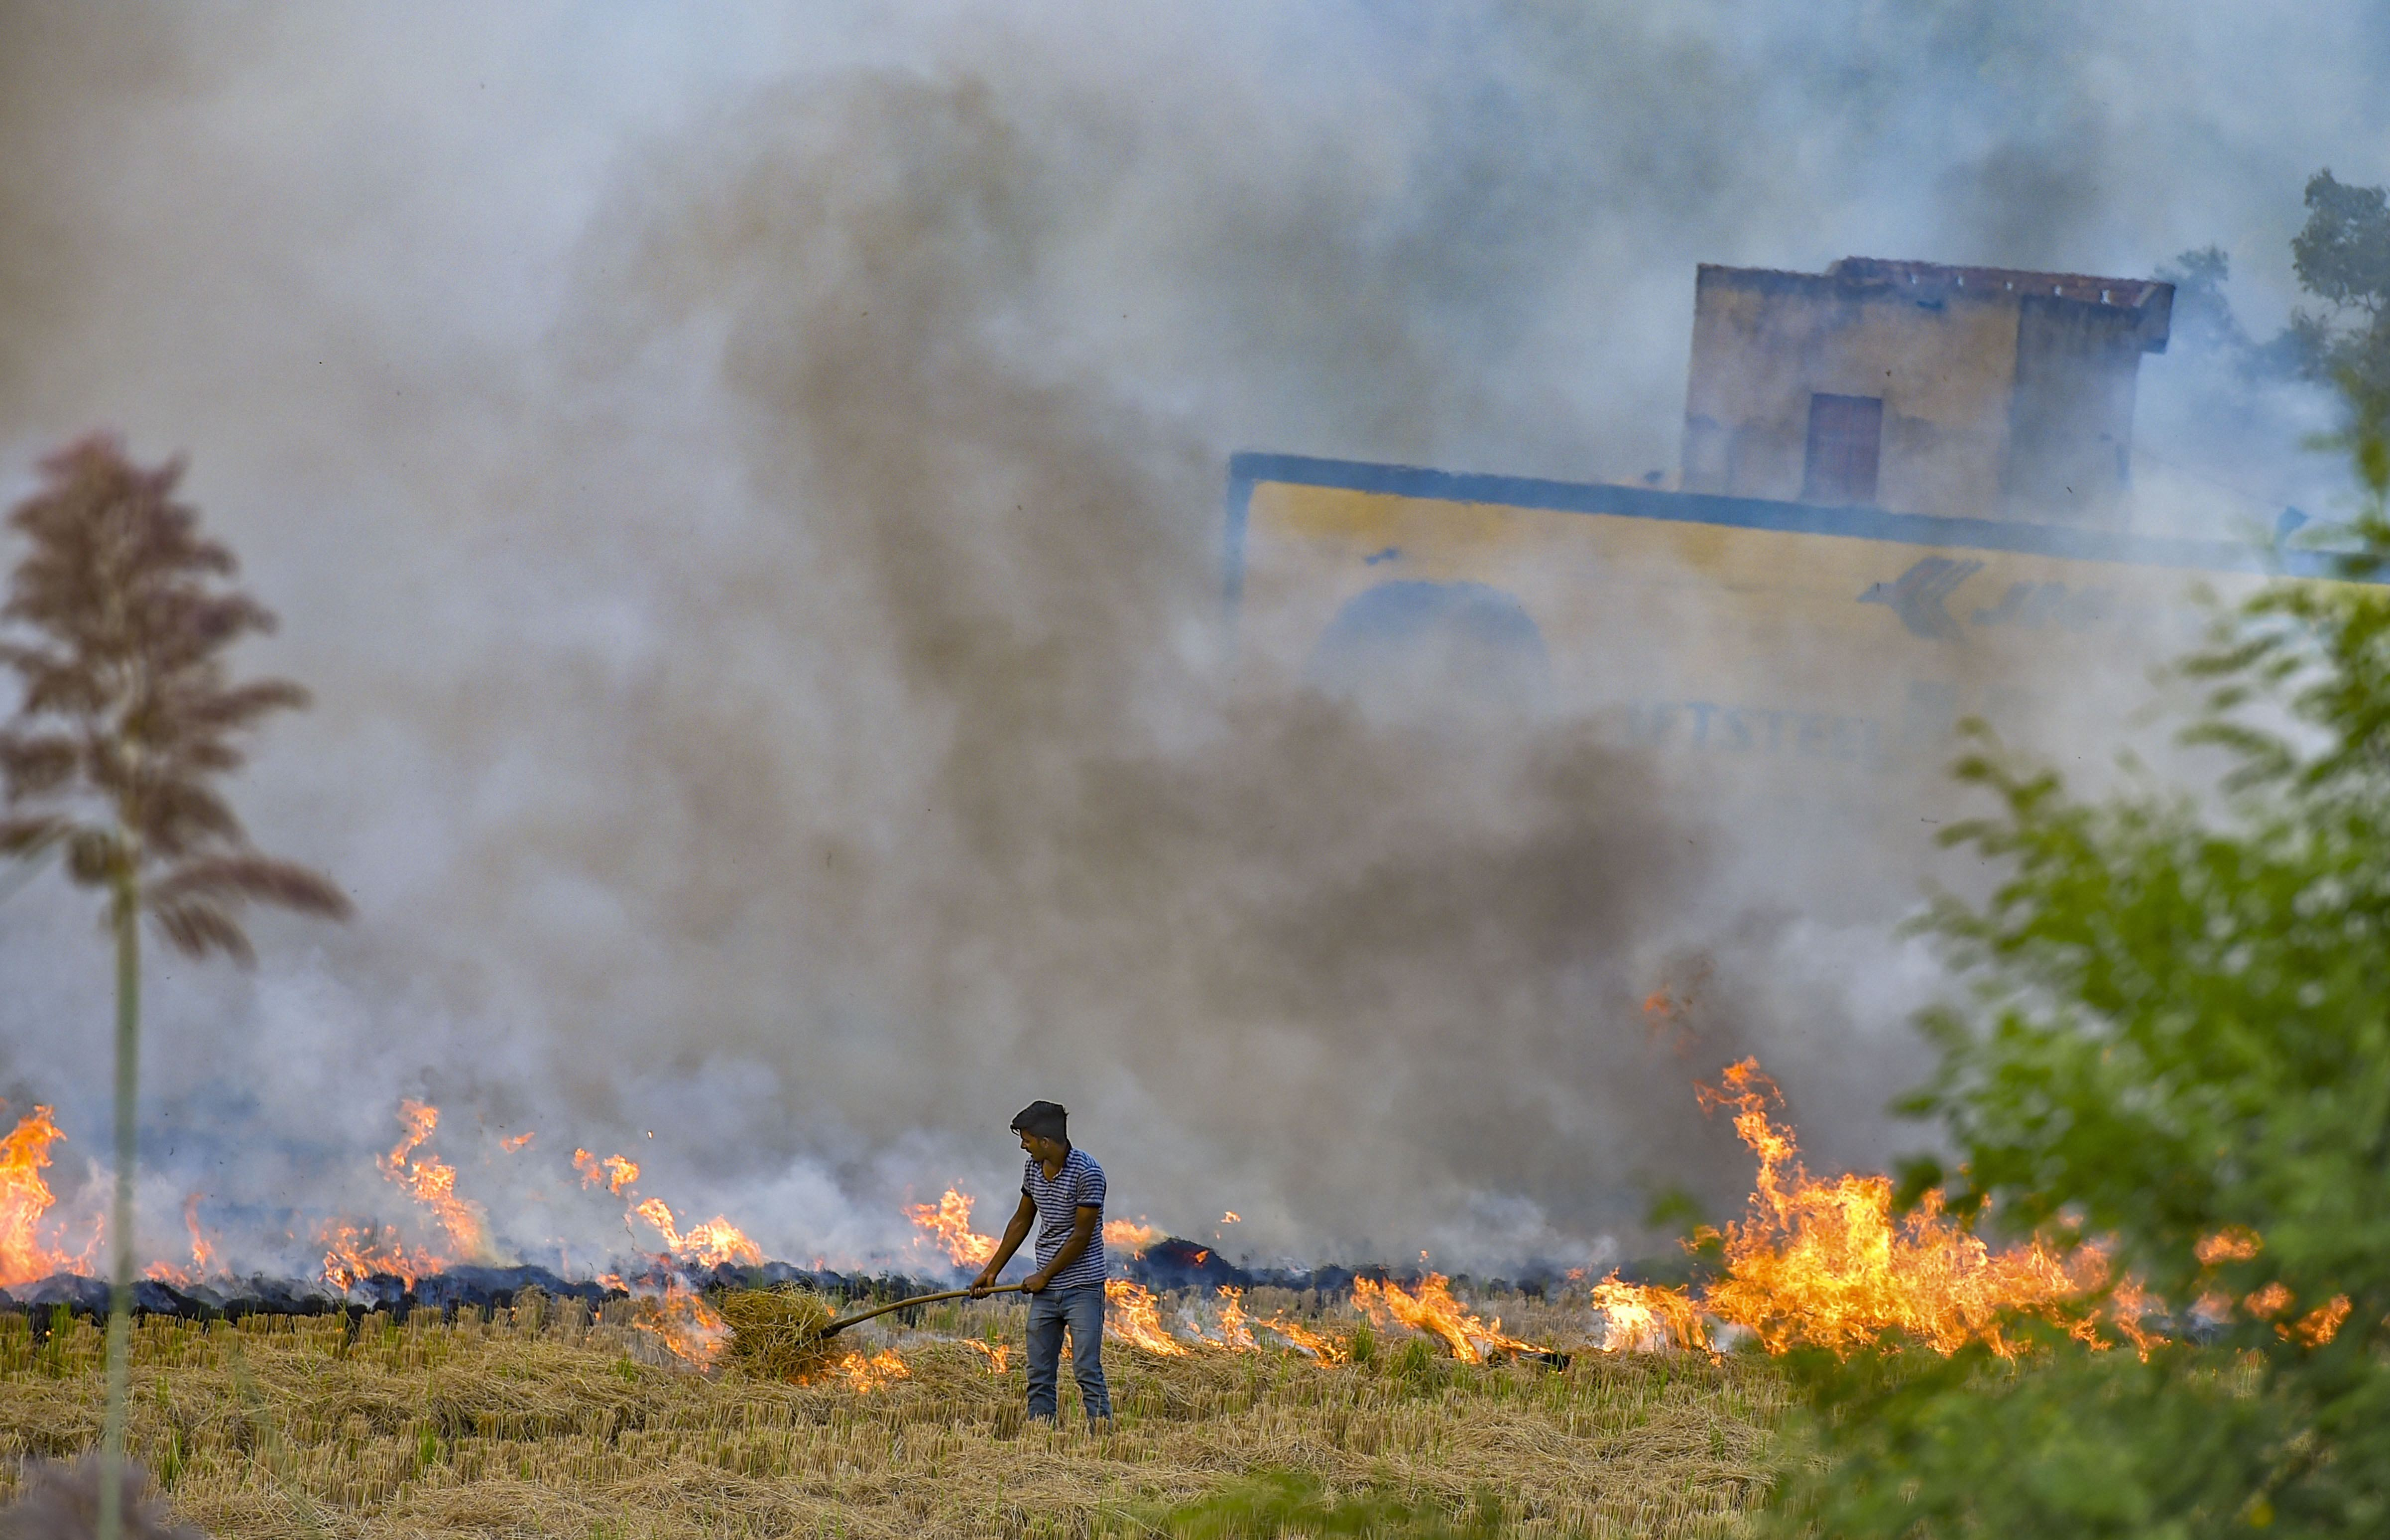 A farmer burns paddy stubbles in a field in a village in Hisar district of Haryana on Friday, October 18, 2019.